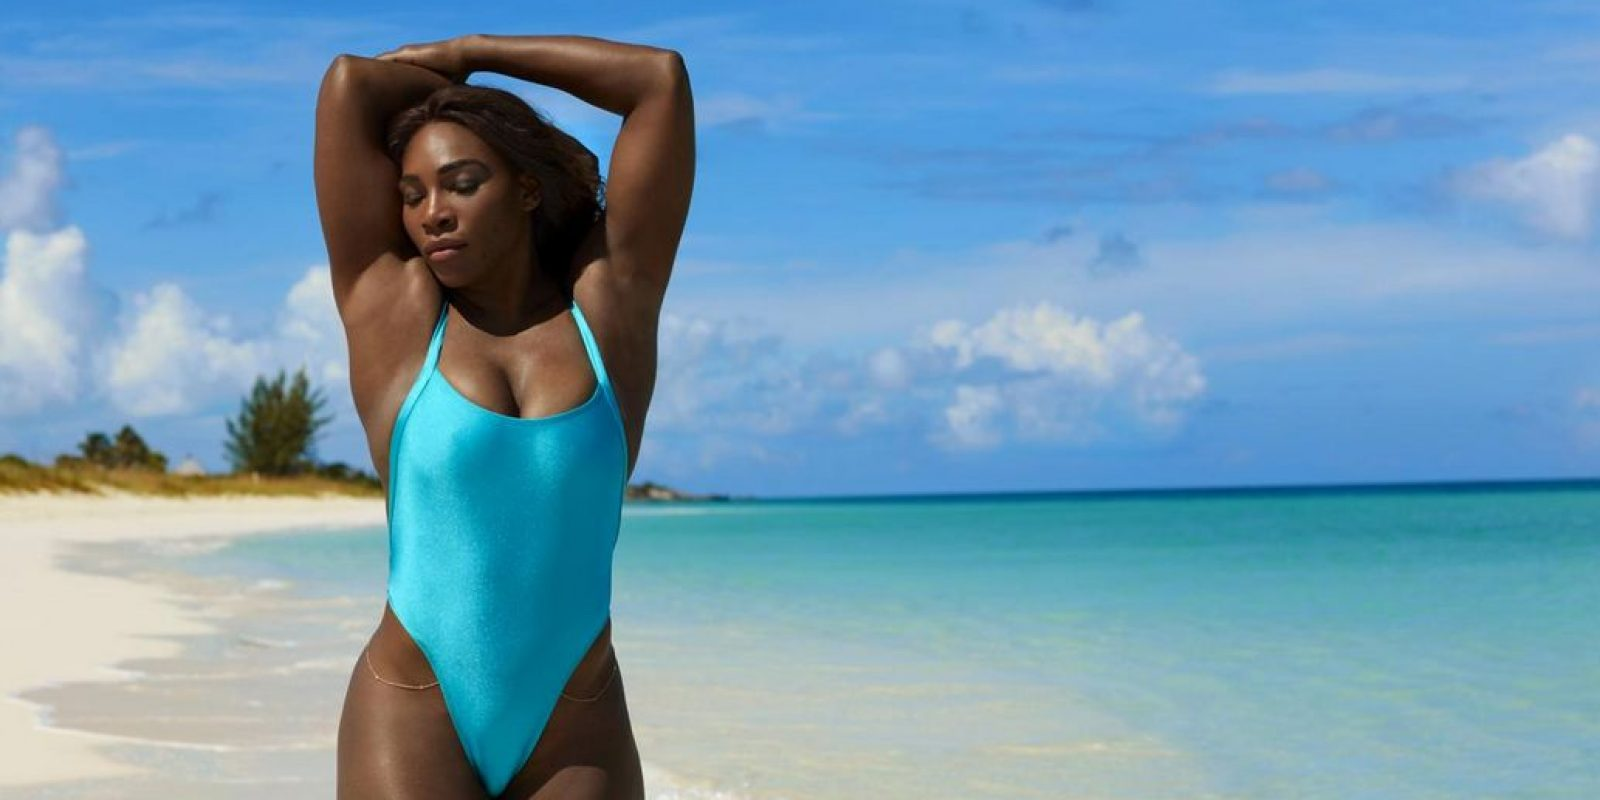 Serena Williams posó para Sports Illustrated/Sports Illustrated. Imagen Por: Serena Williams posó para Sports Illustrated/Sports Illustrated